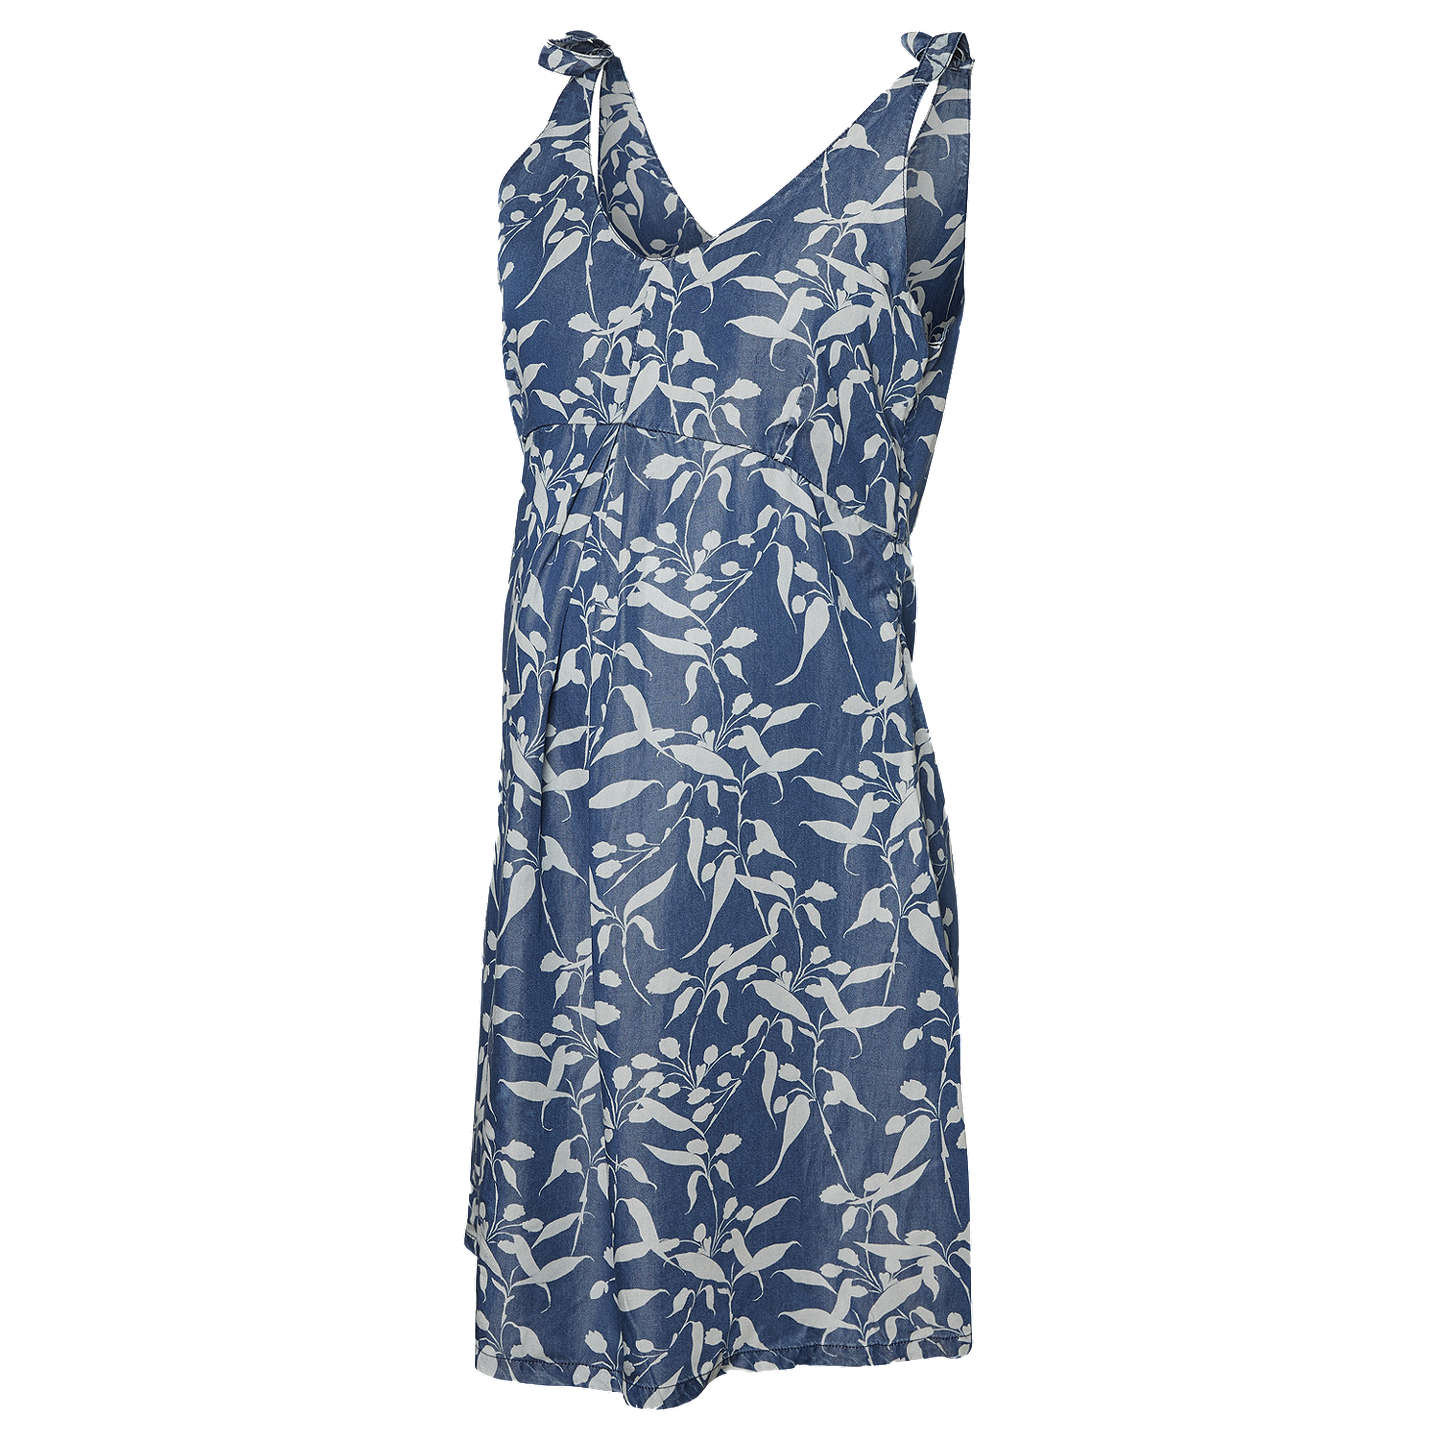 BuyMamalicious Juliana Floral Maternity Dress, Blue, XS Online at johnlewis.com